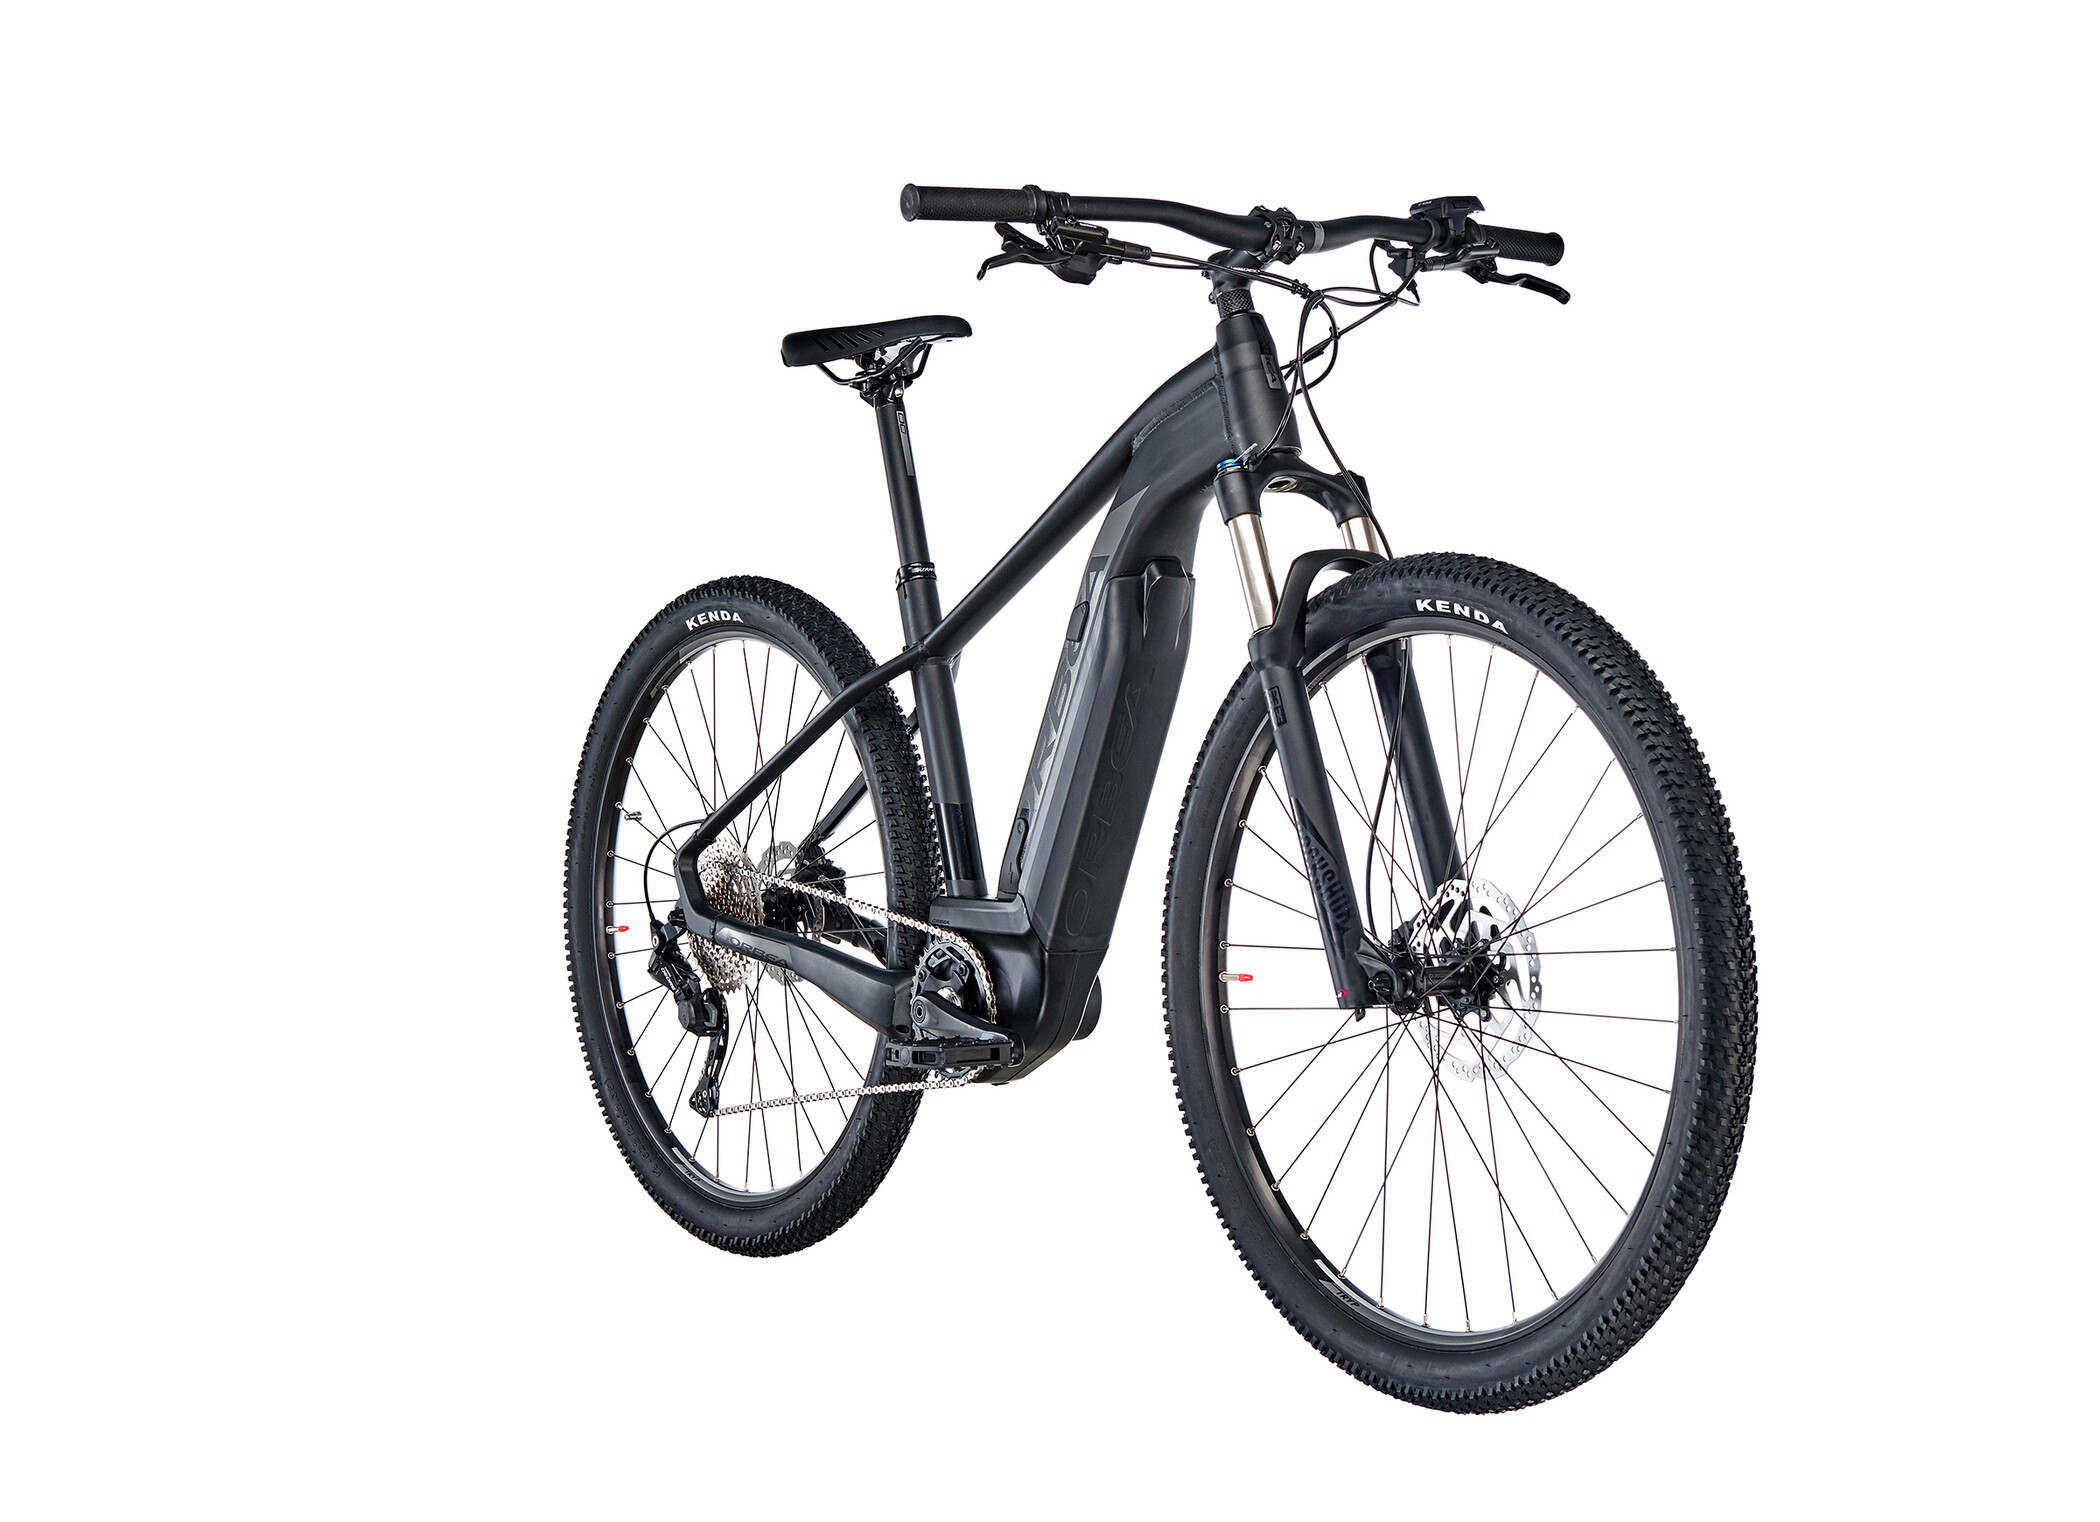 ORBEA Keram 15 29 inches, black (2019) | MTB